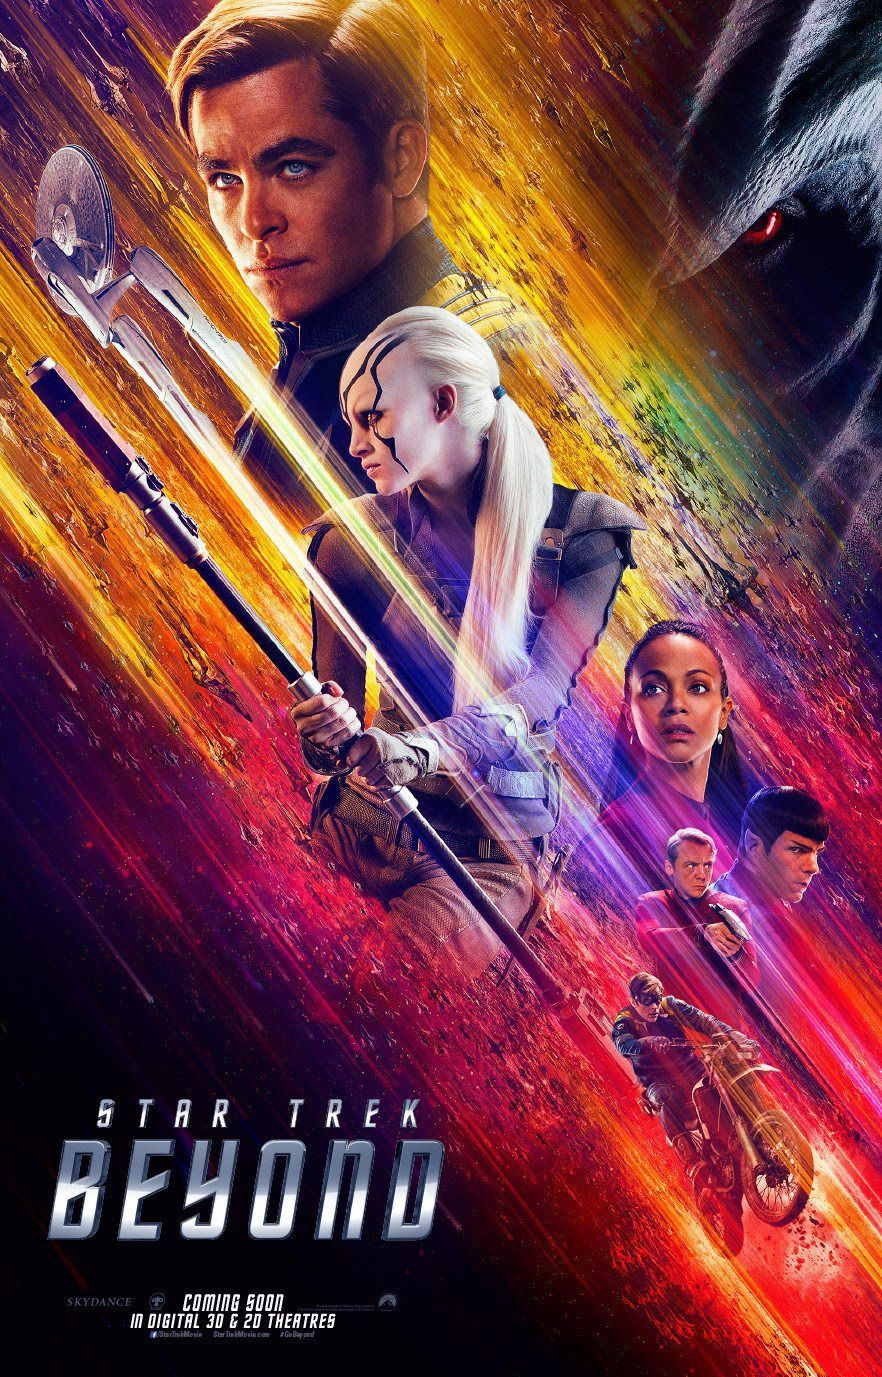 http://cdn.collider.com/wp-content/uploads/2016/05/star-trek-beyond-poster-international.jpg